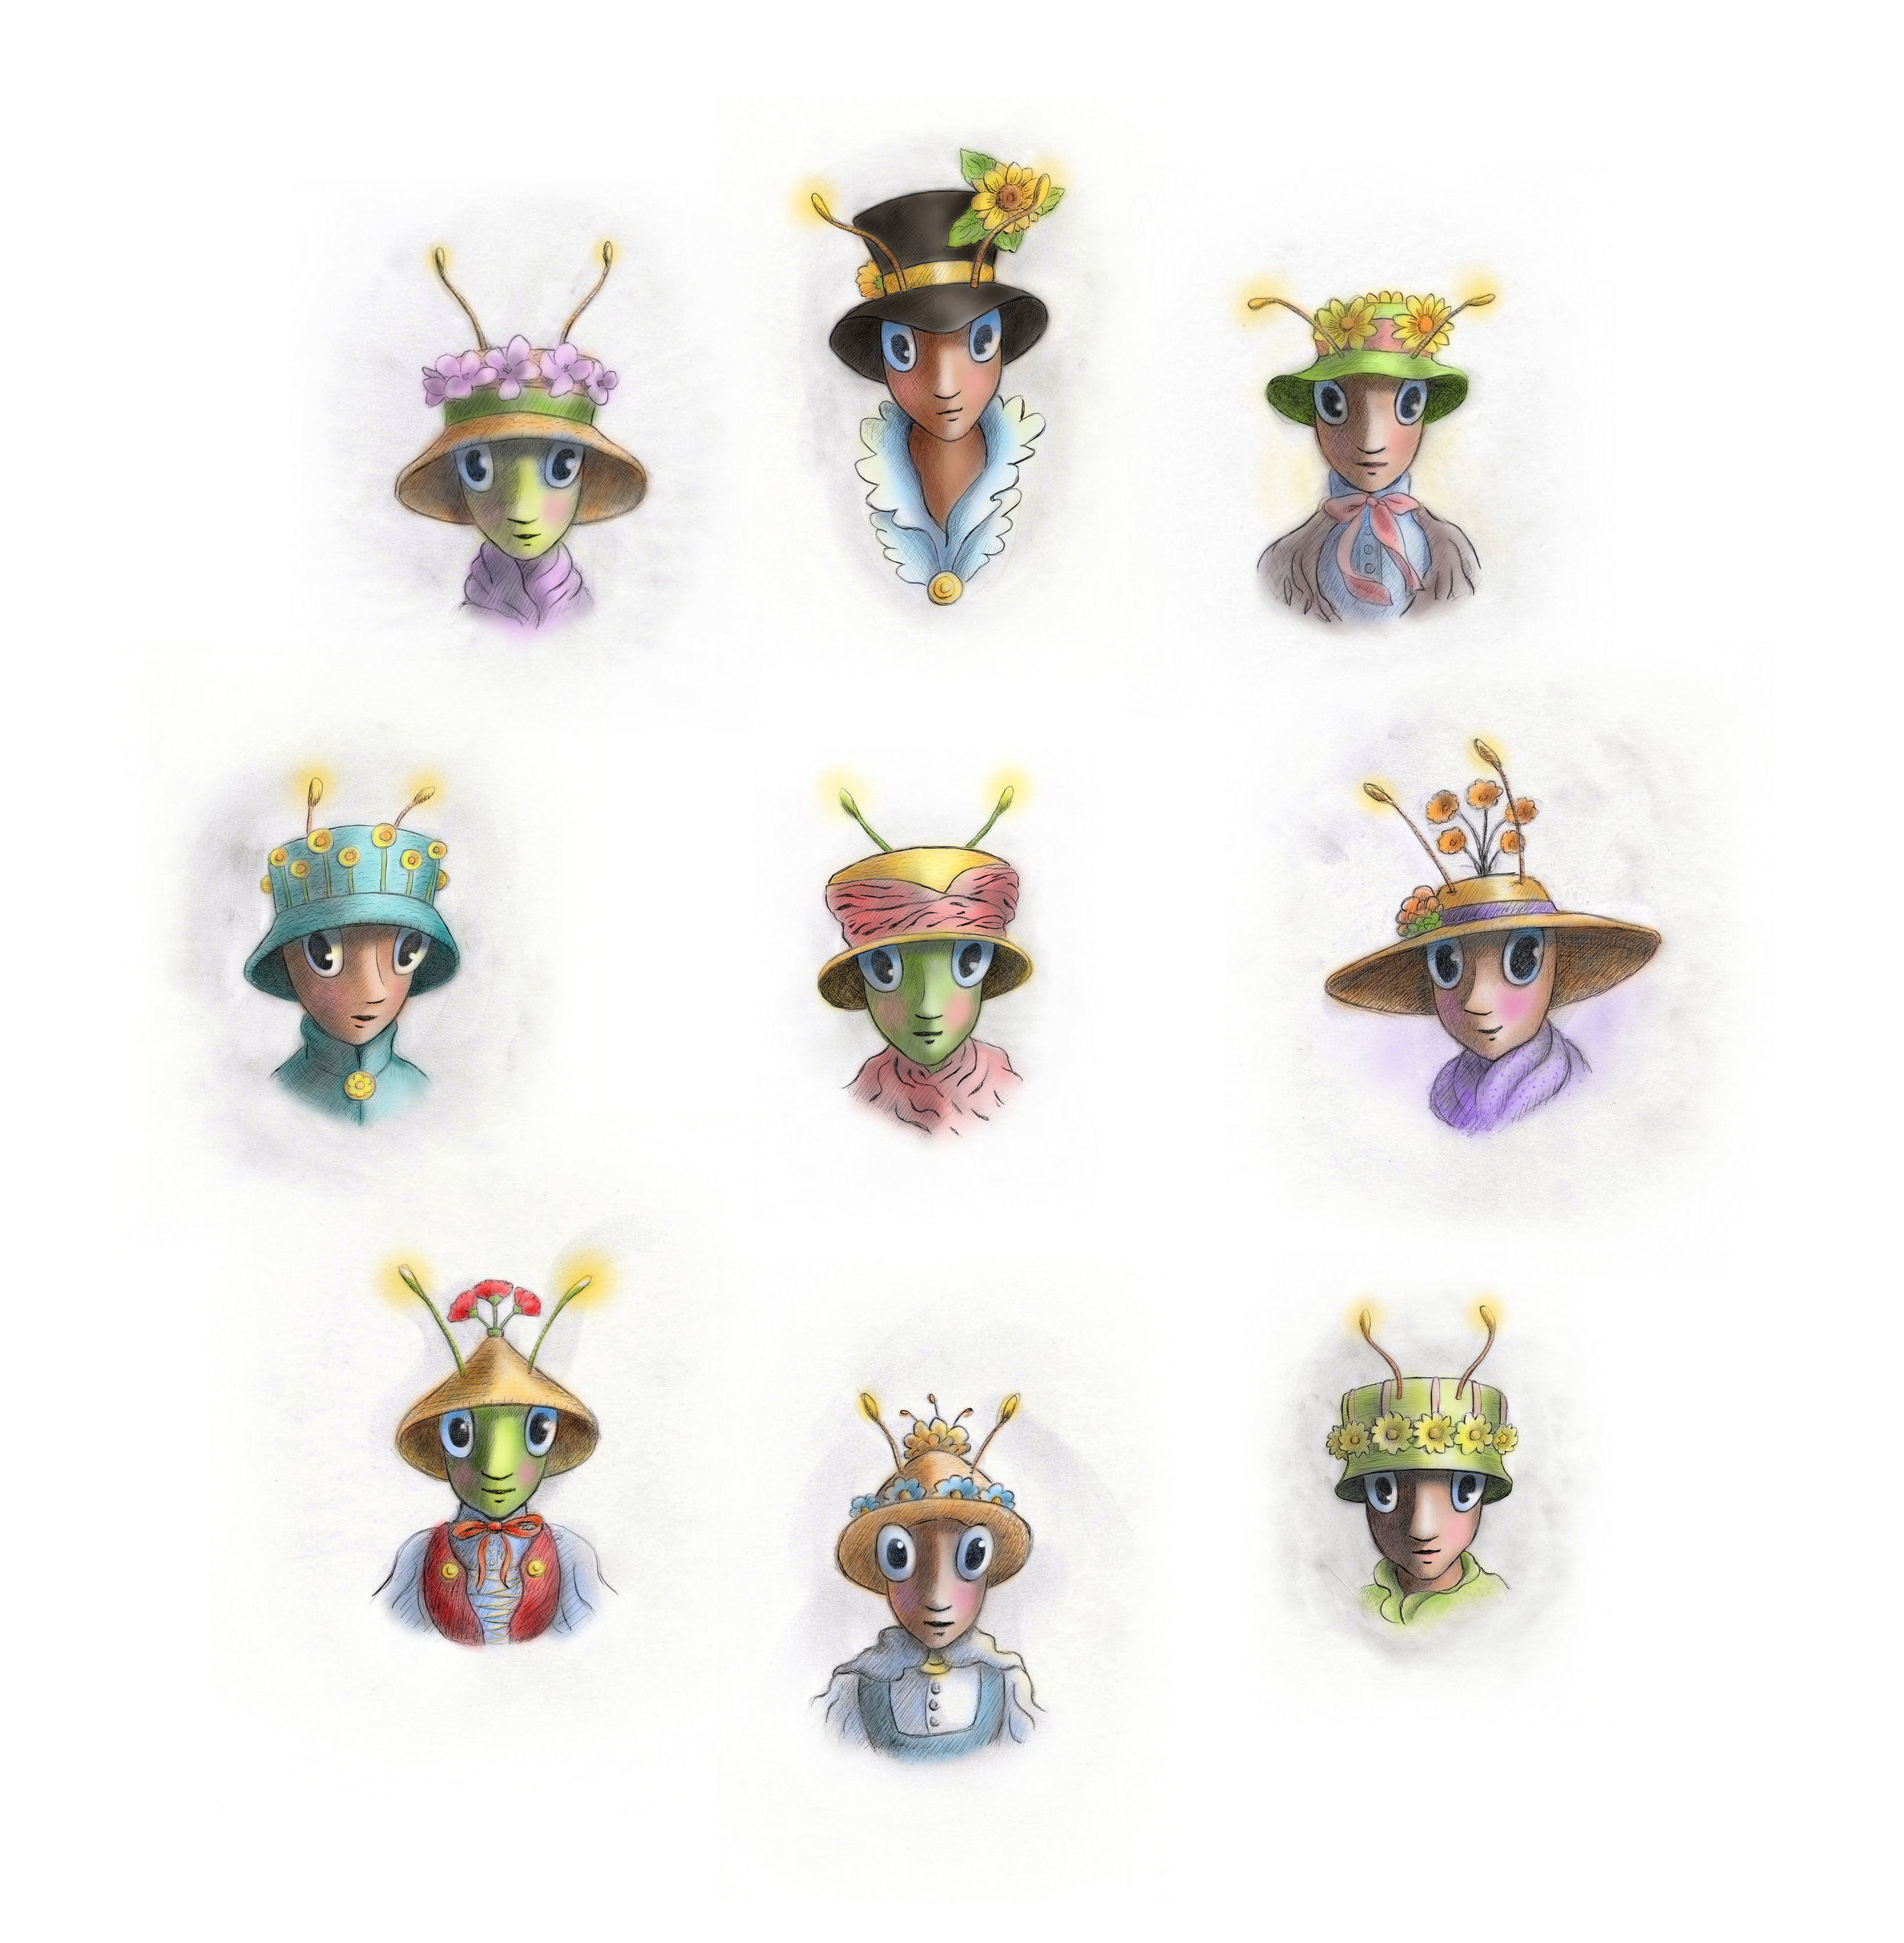 Fashion Bugs with Spring Hats copy.jpg